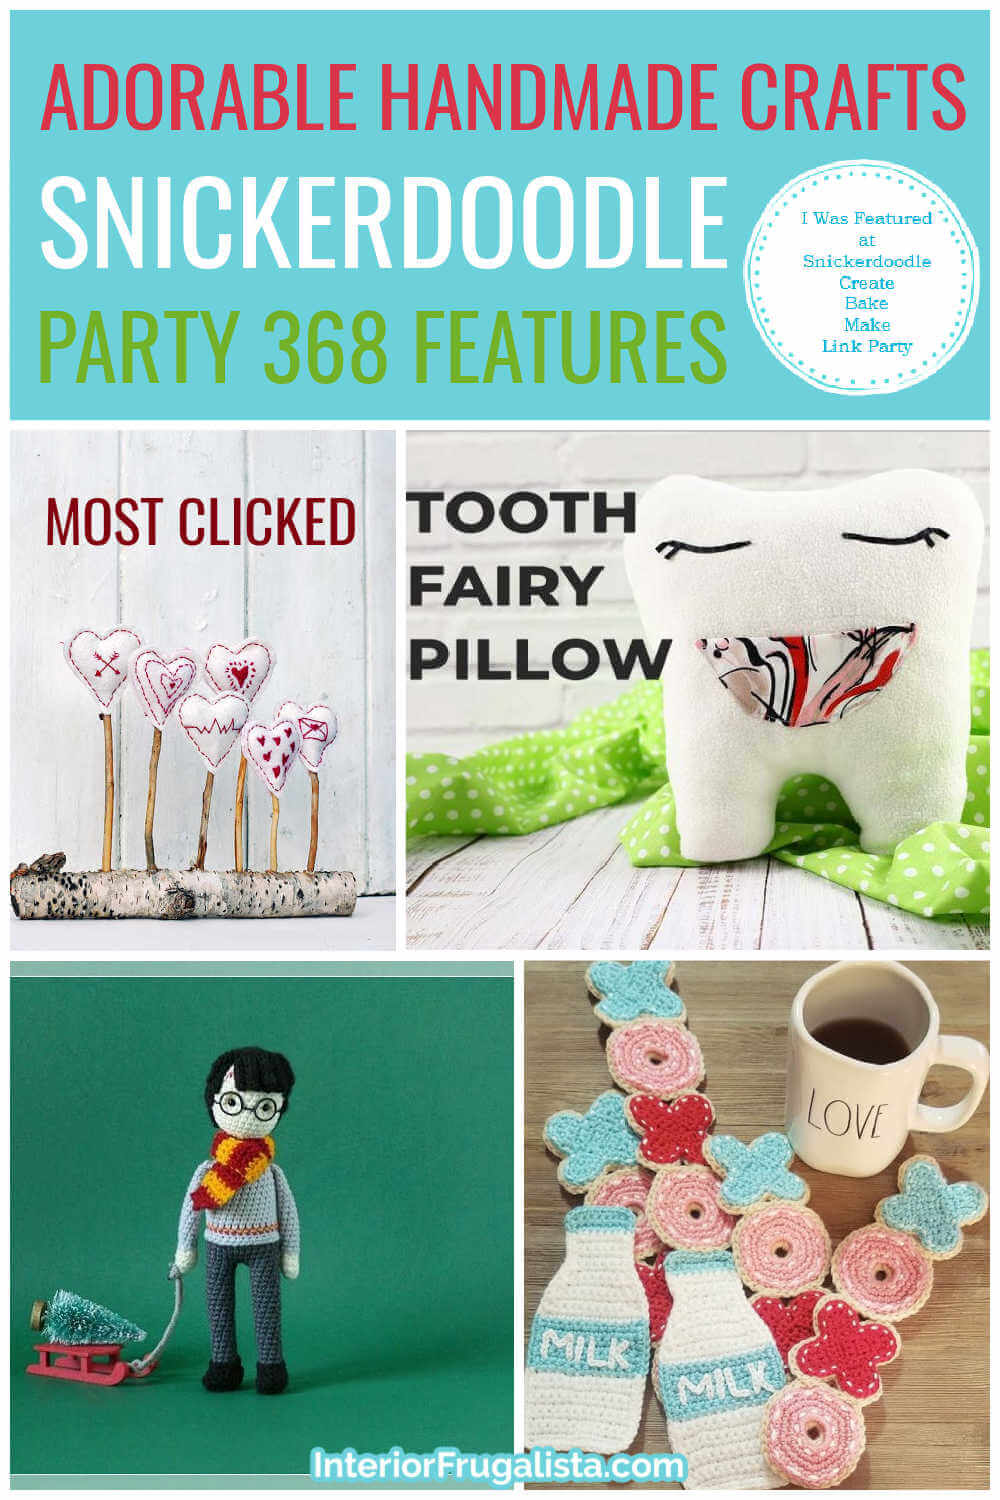 Adorable Handmade Crafts - Snickerdoodle Create Bake Make Link Party 368 Features co-hosted by Interior Frugalista #linkparty #linkpartyfeatures #snickerdoodleparty